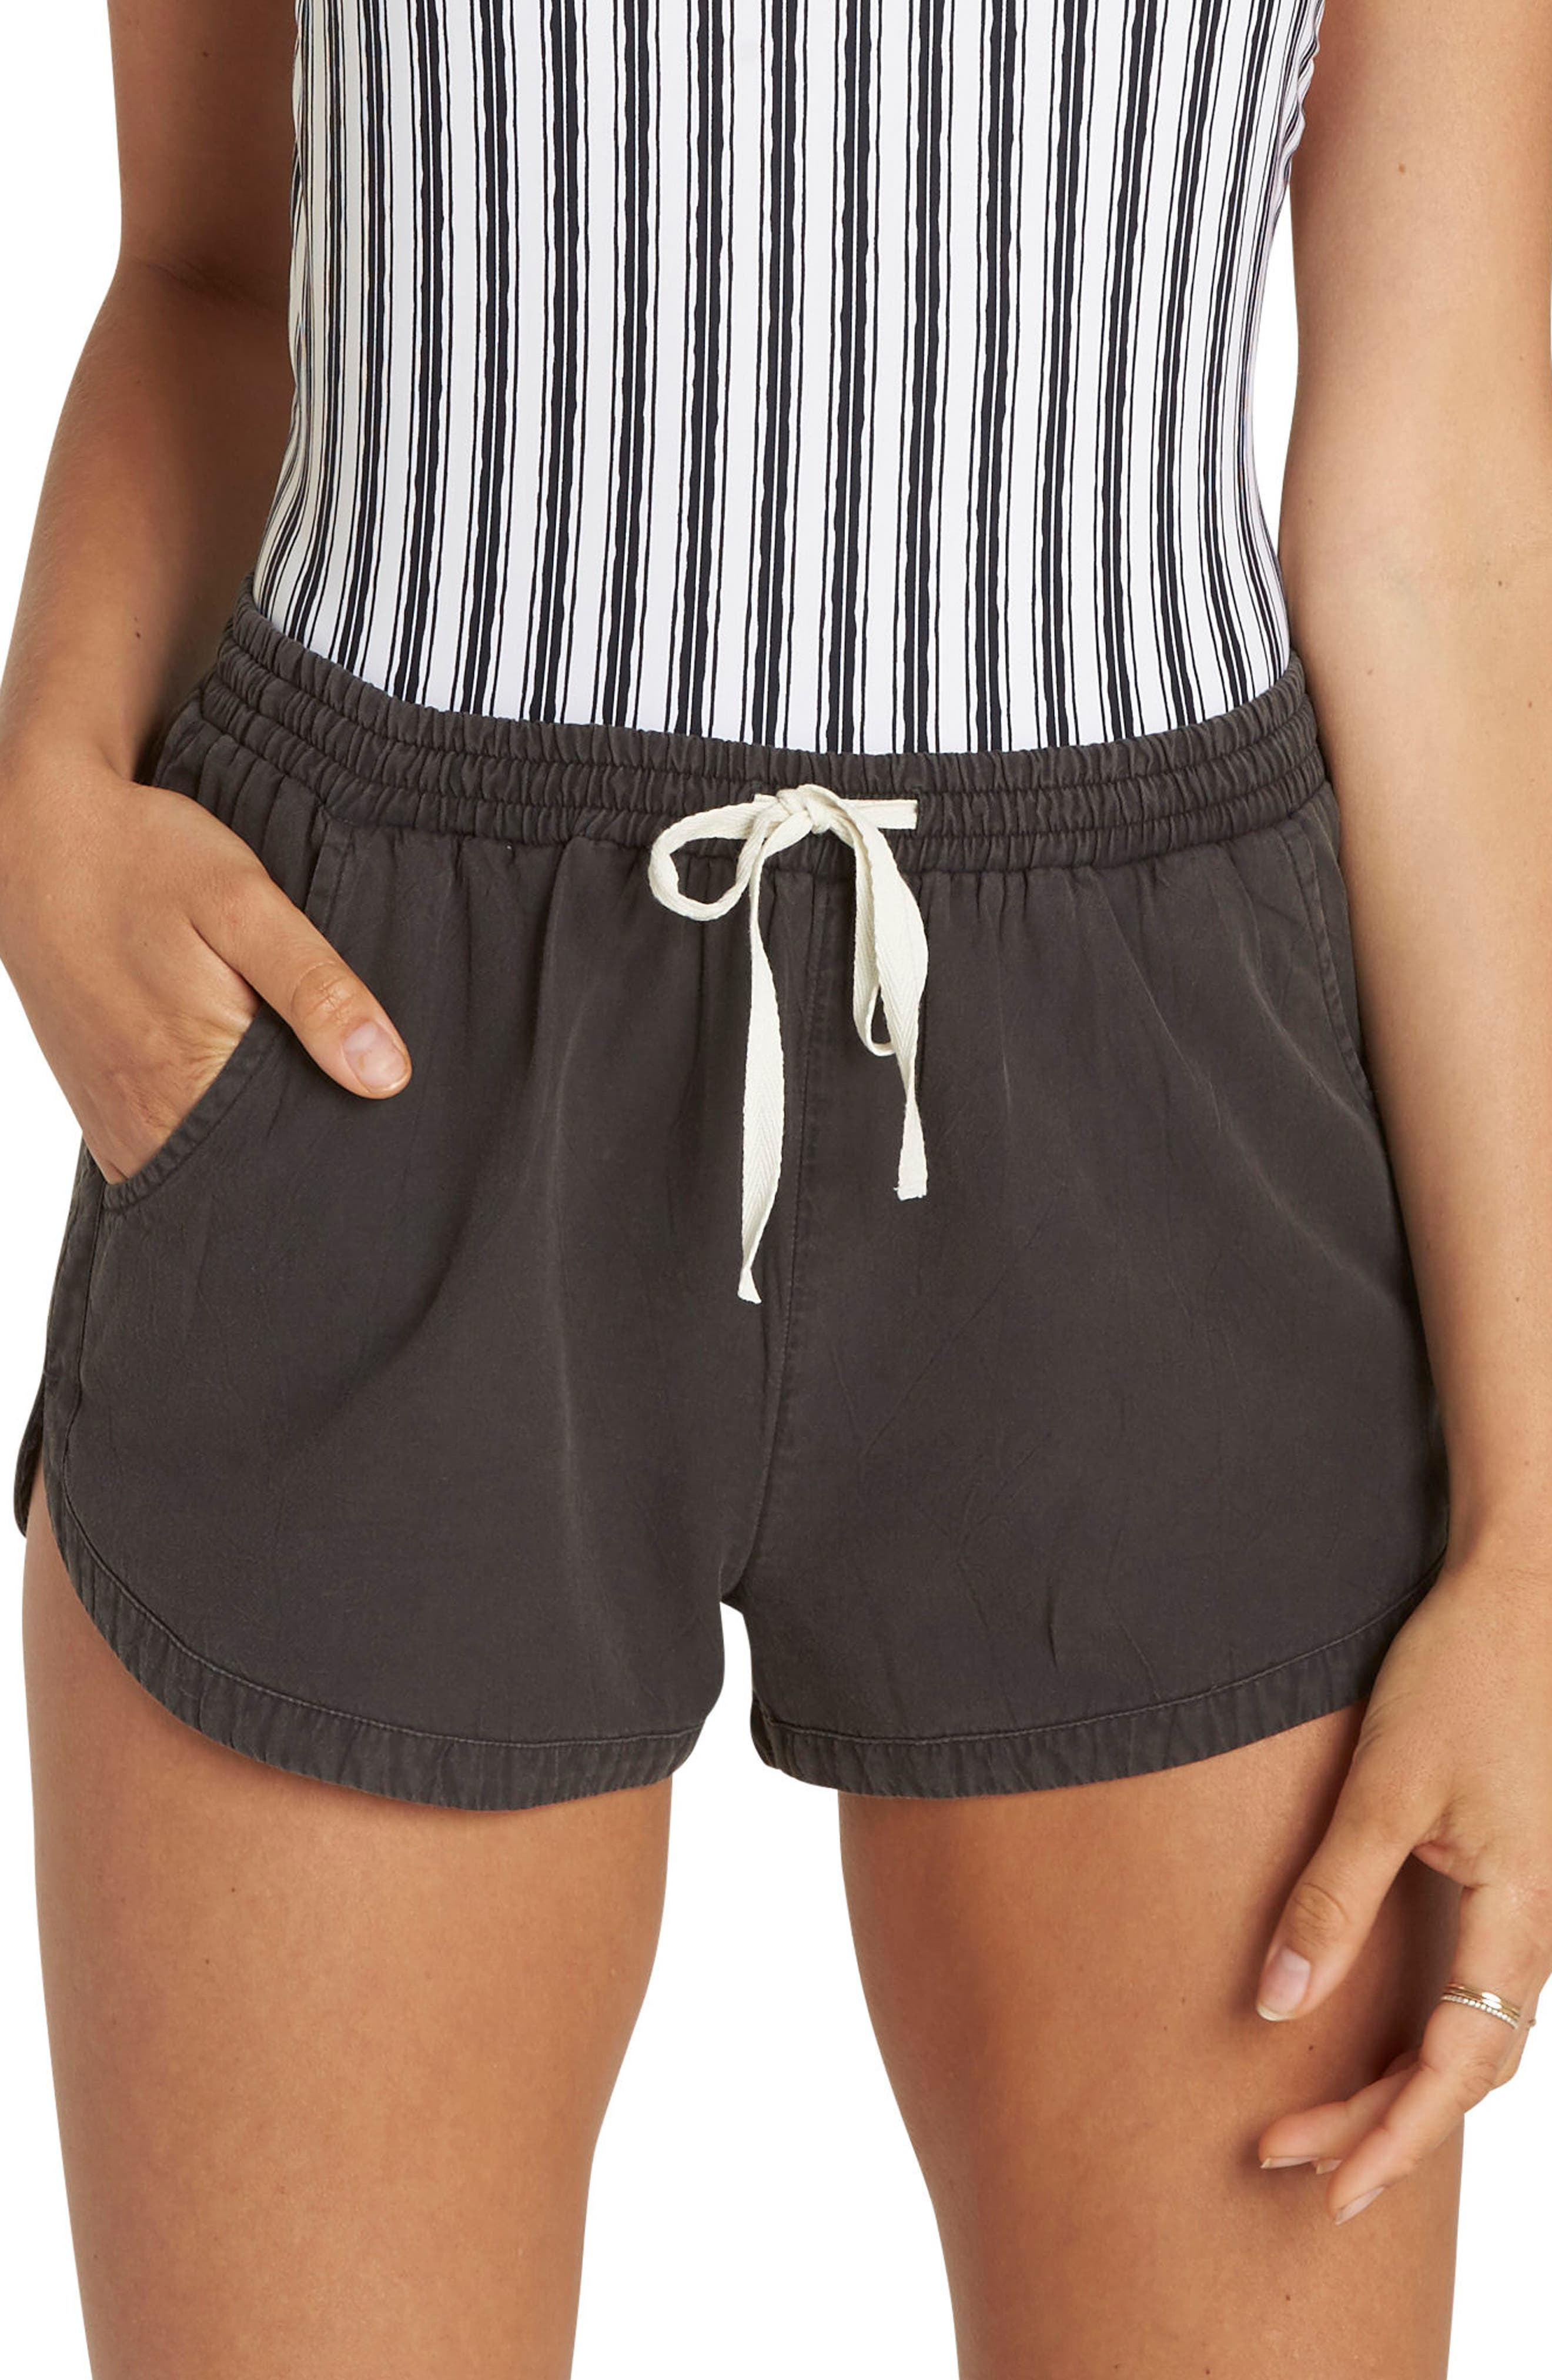 'Road Trippin' Shorts,                         Main,                         color, Off Black